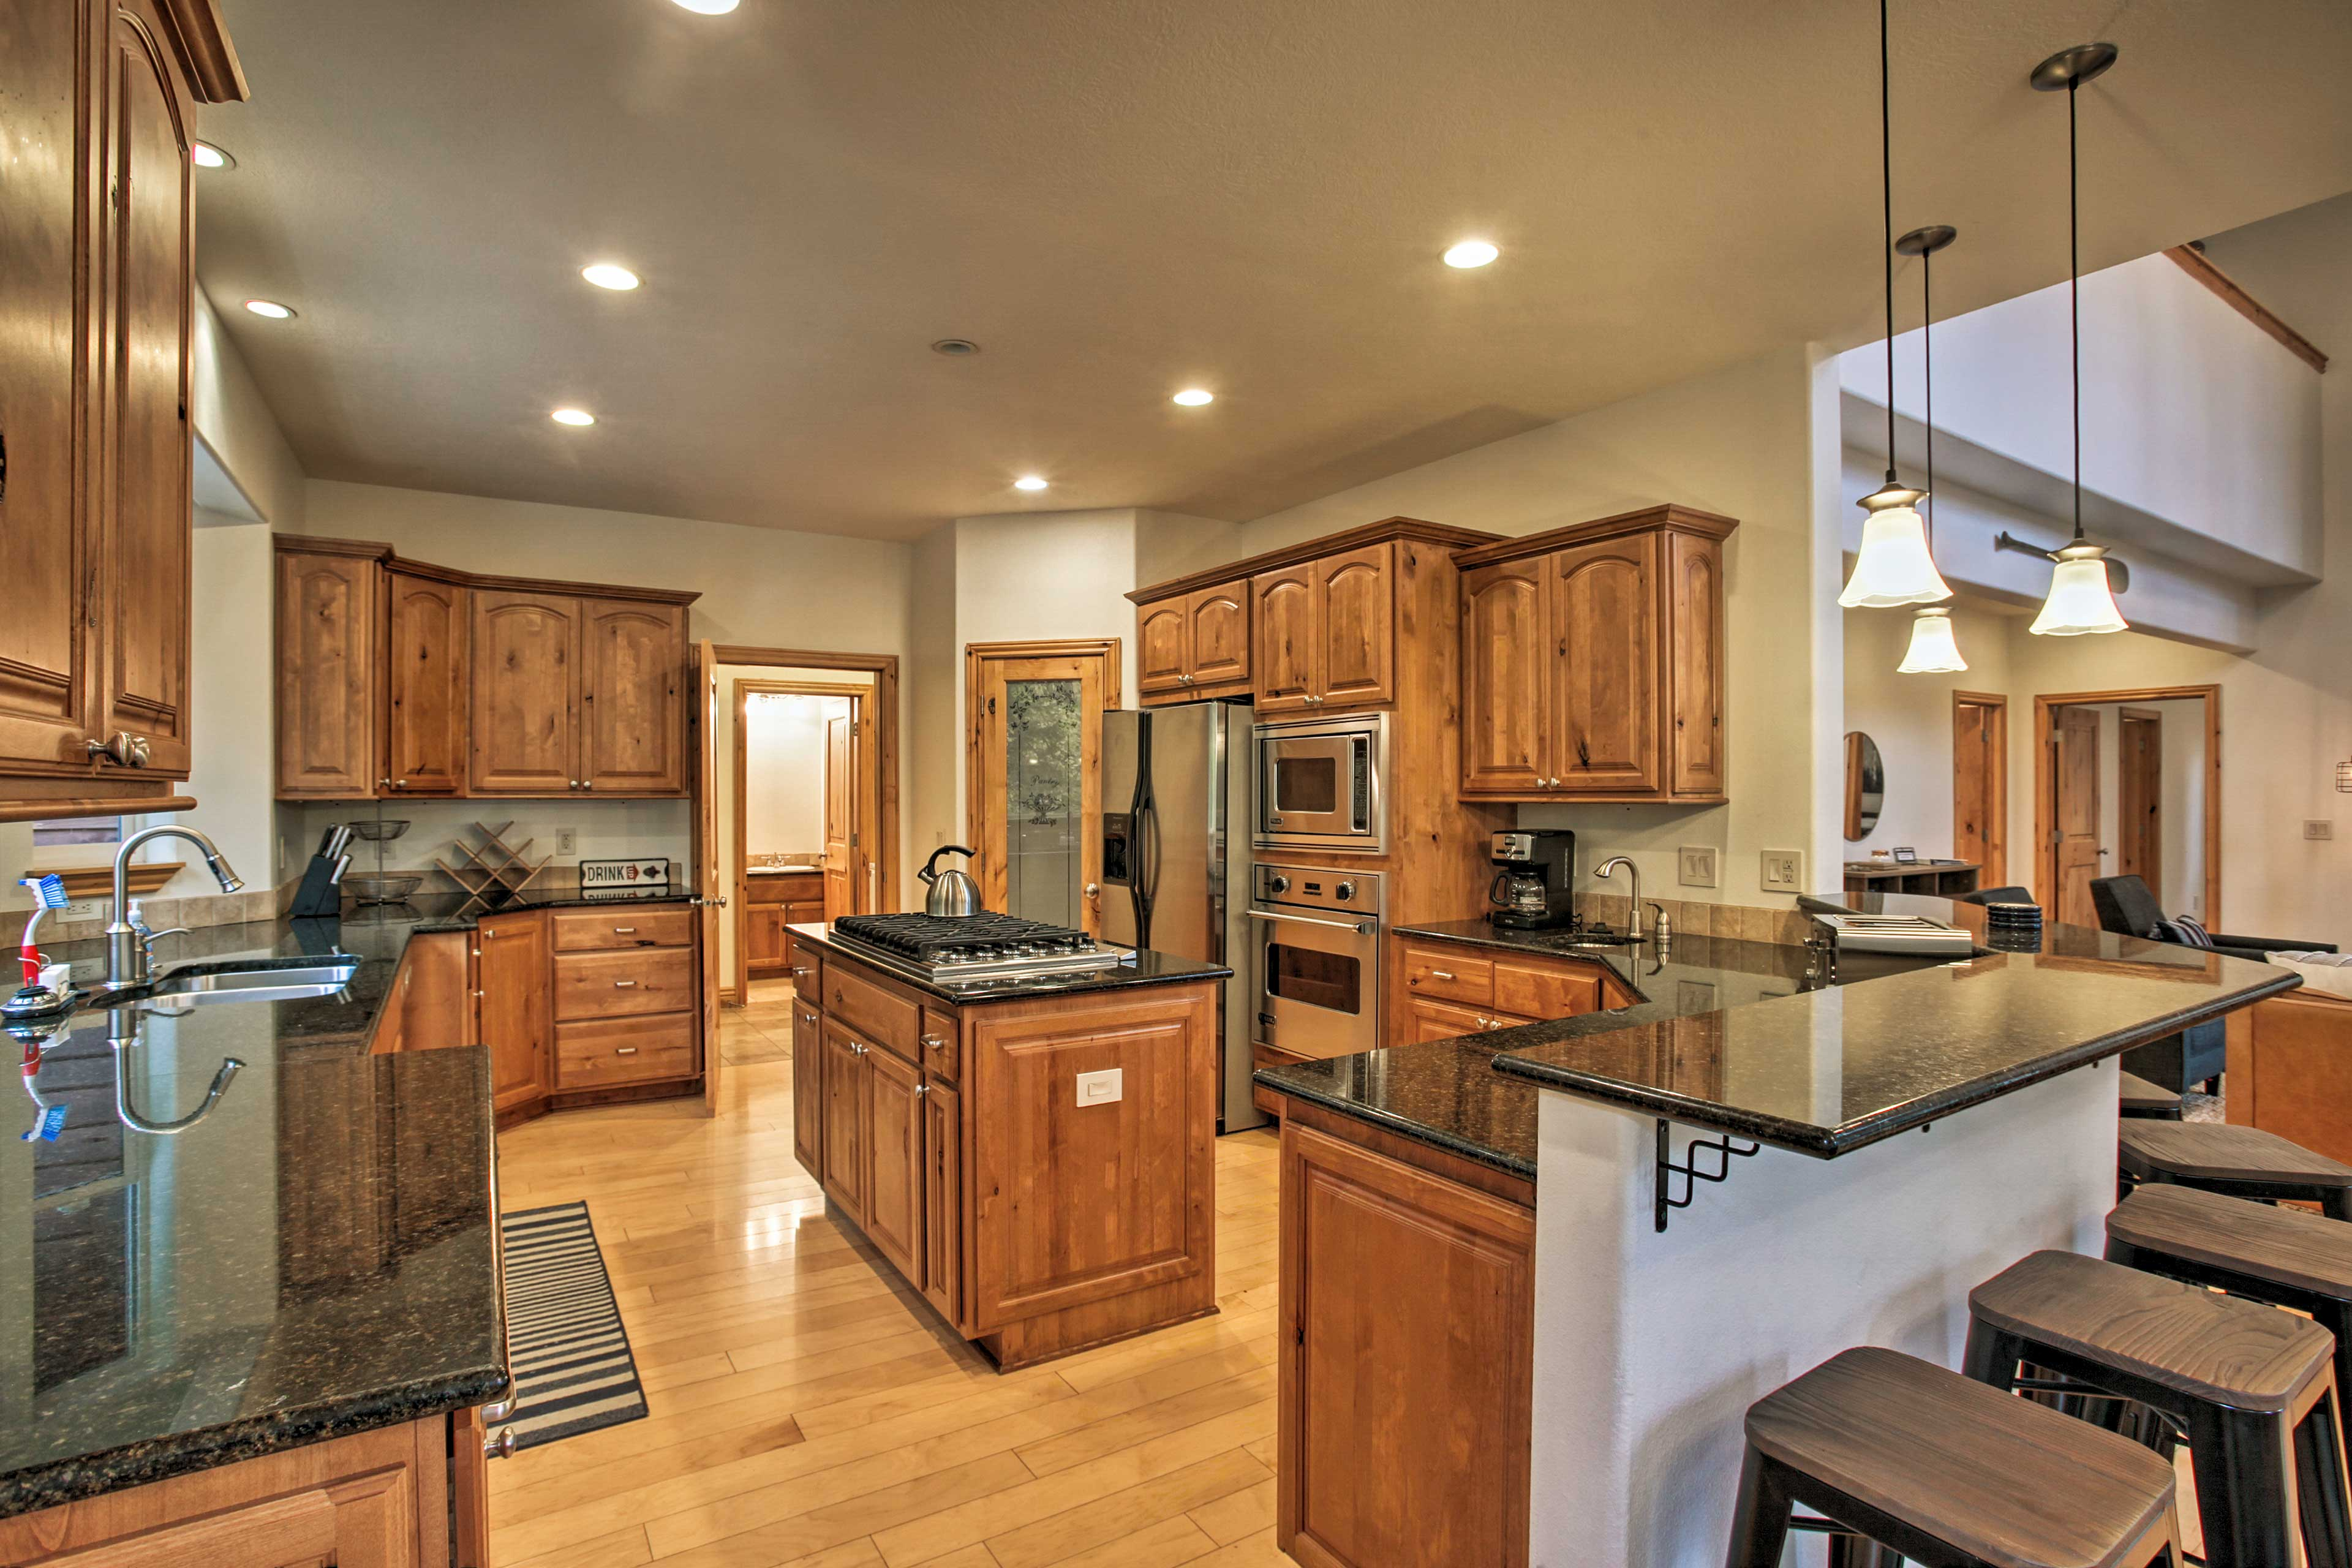 You'll love cooking in this state-of-the-art & fully equipped kitchen.